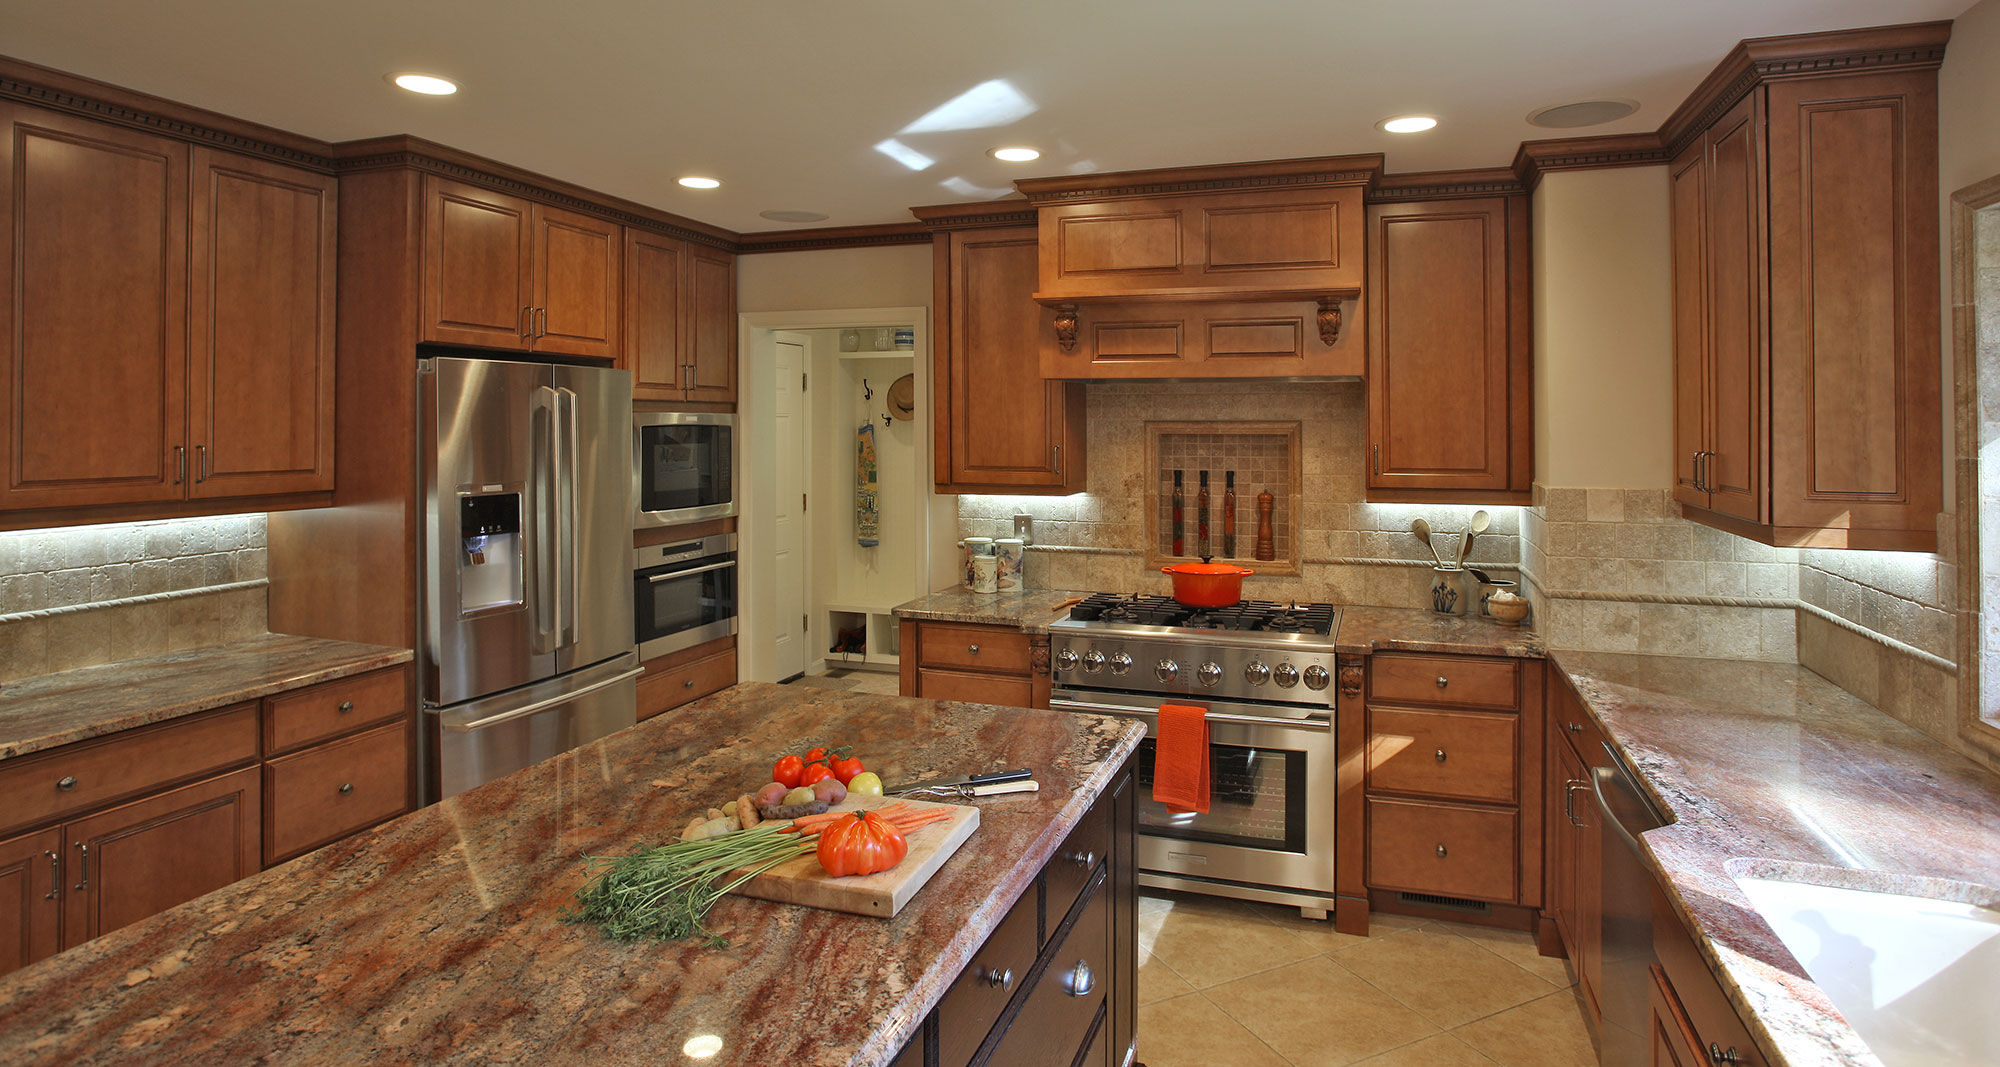 Kitchen Remodeling Maryland Creative Remodelling Kitchen And Bath Remodeling Serving Northern Virginia Maryland .